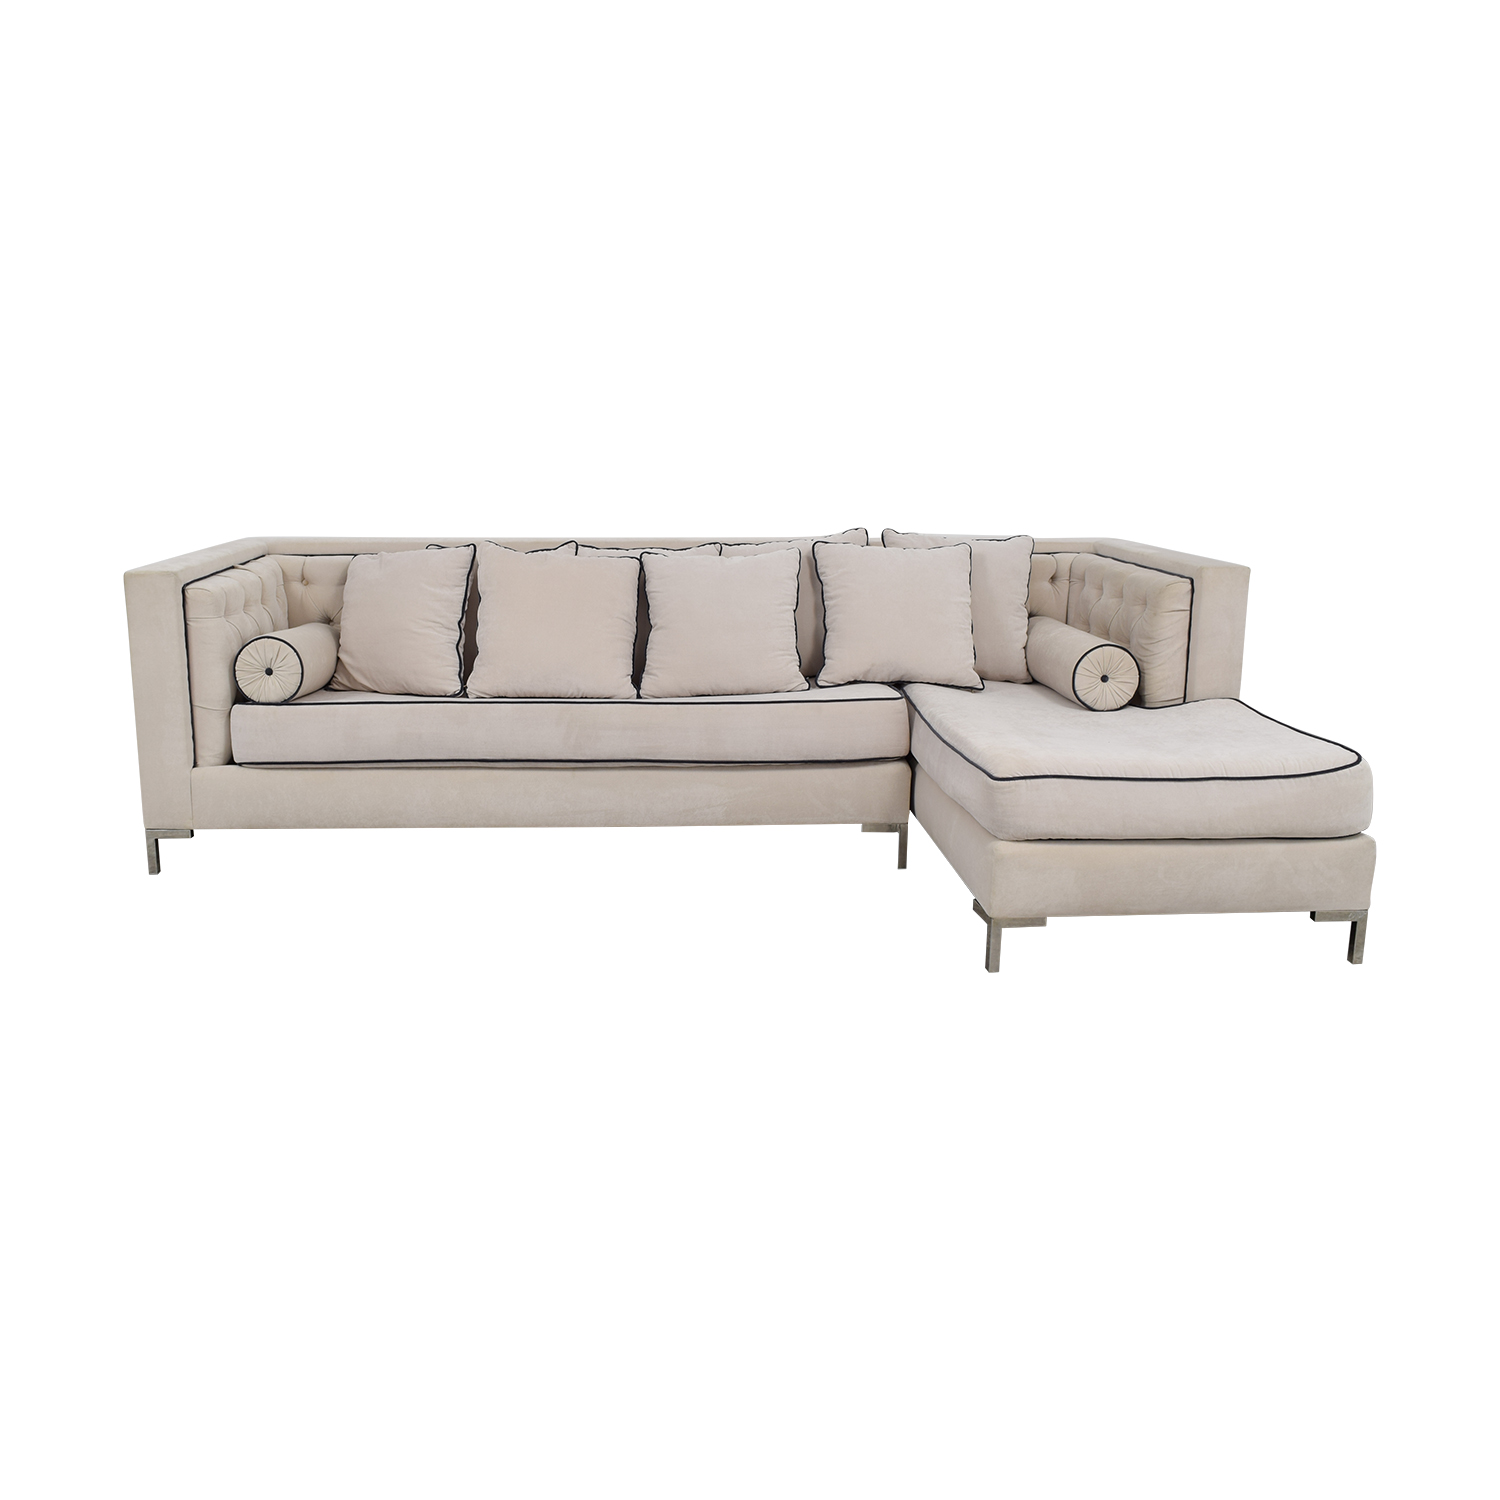 Decenni Tobias Decenni Tobias White Chaise Sectional used